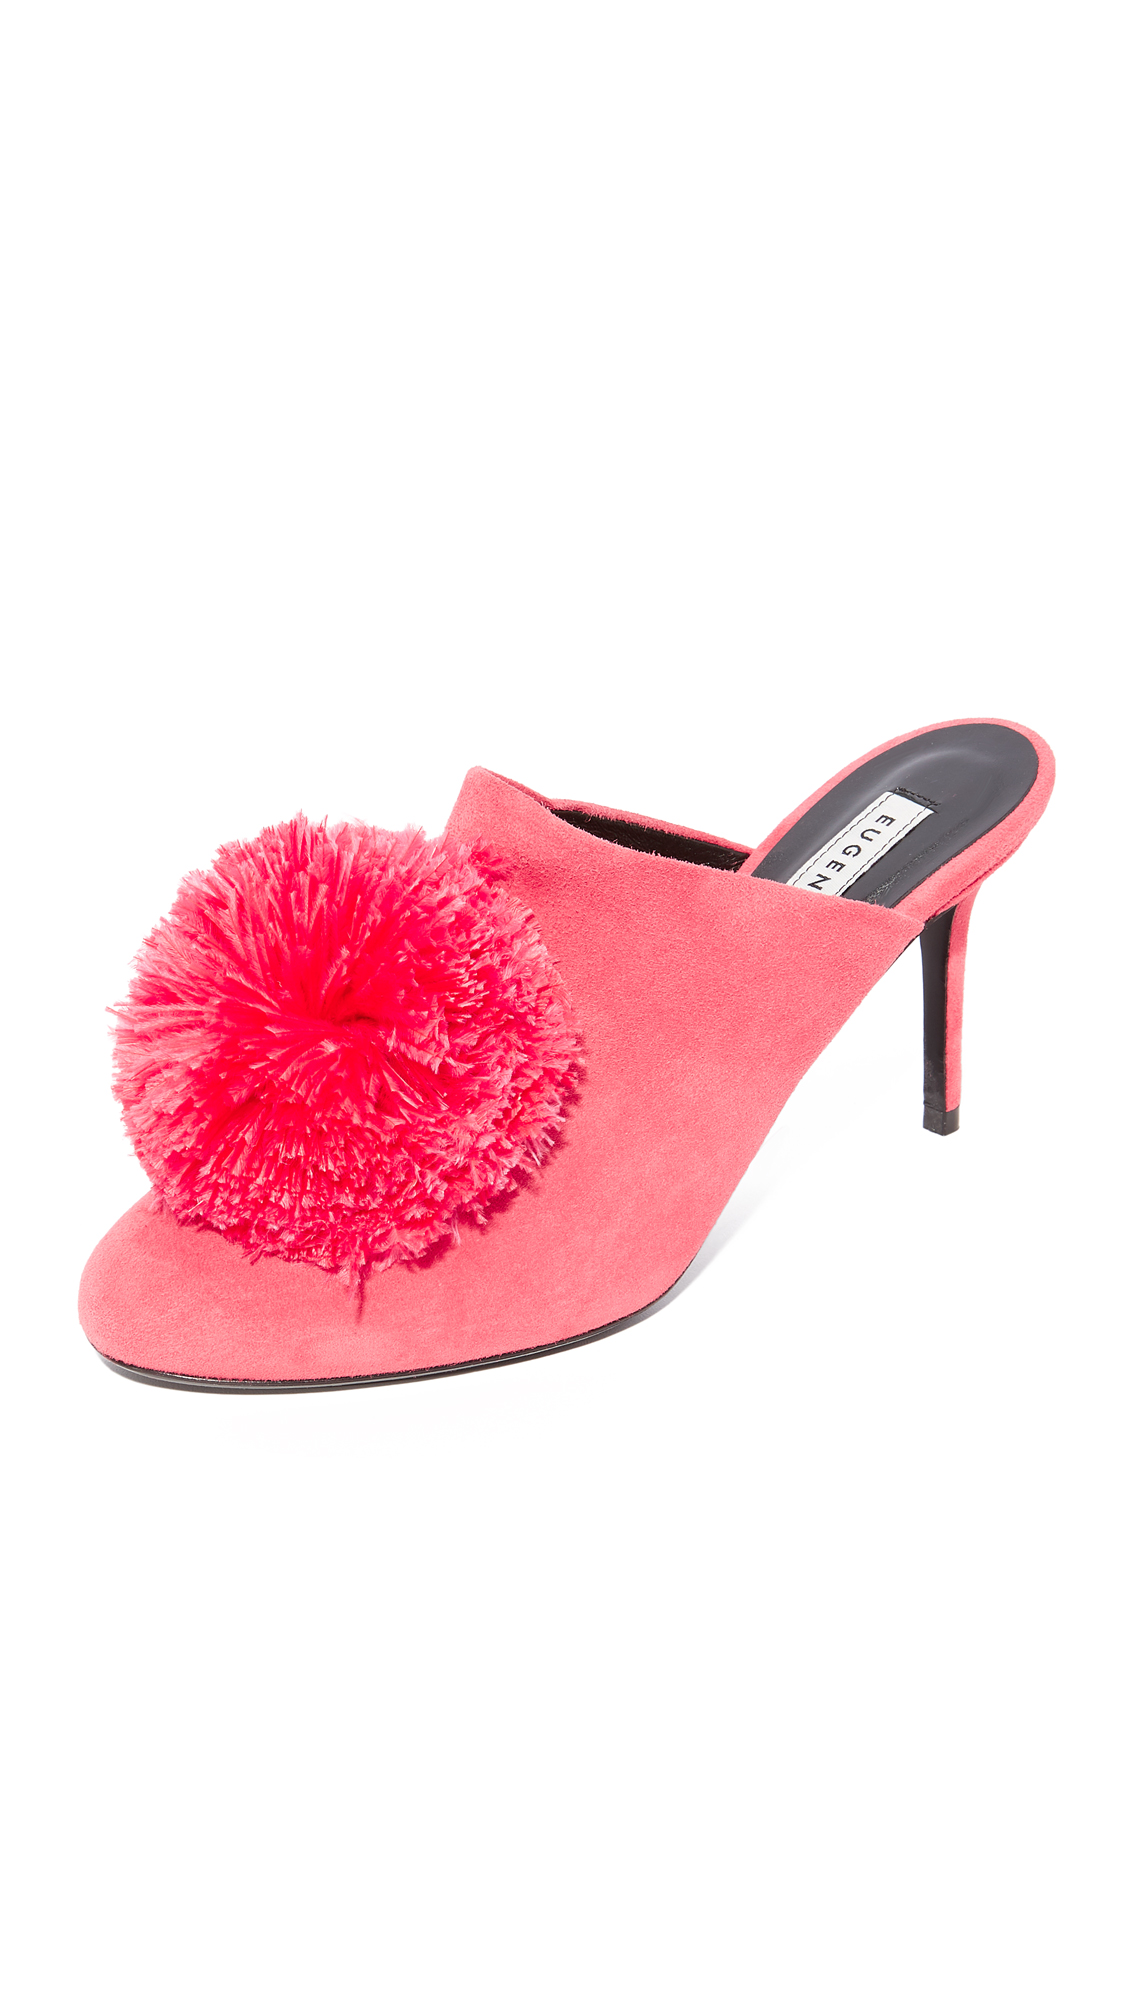 Eugenia Kim Violet Pom Pom Pumps - Shocking Pink